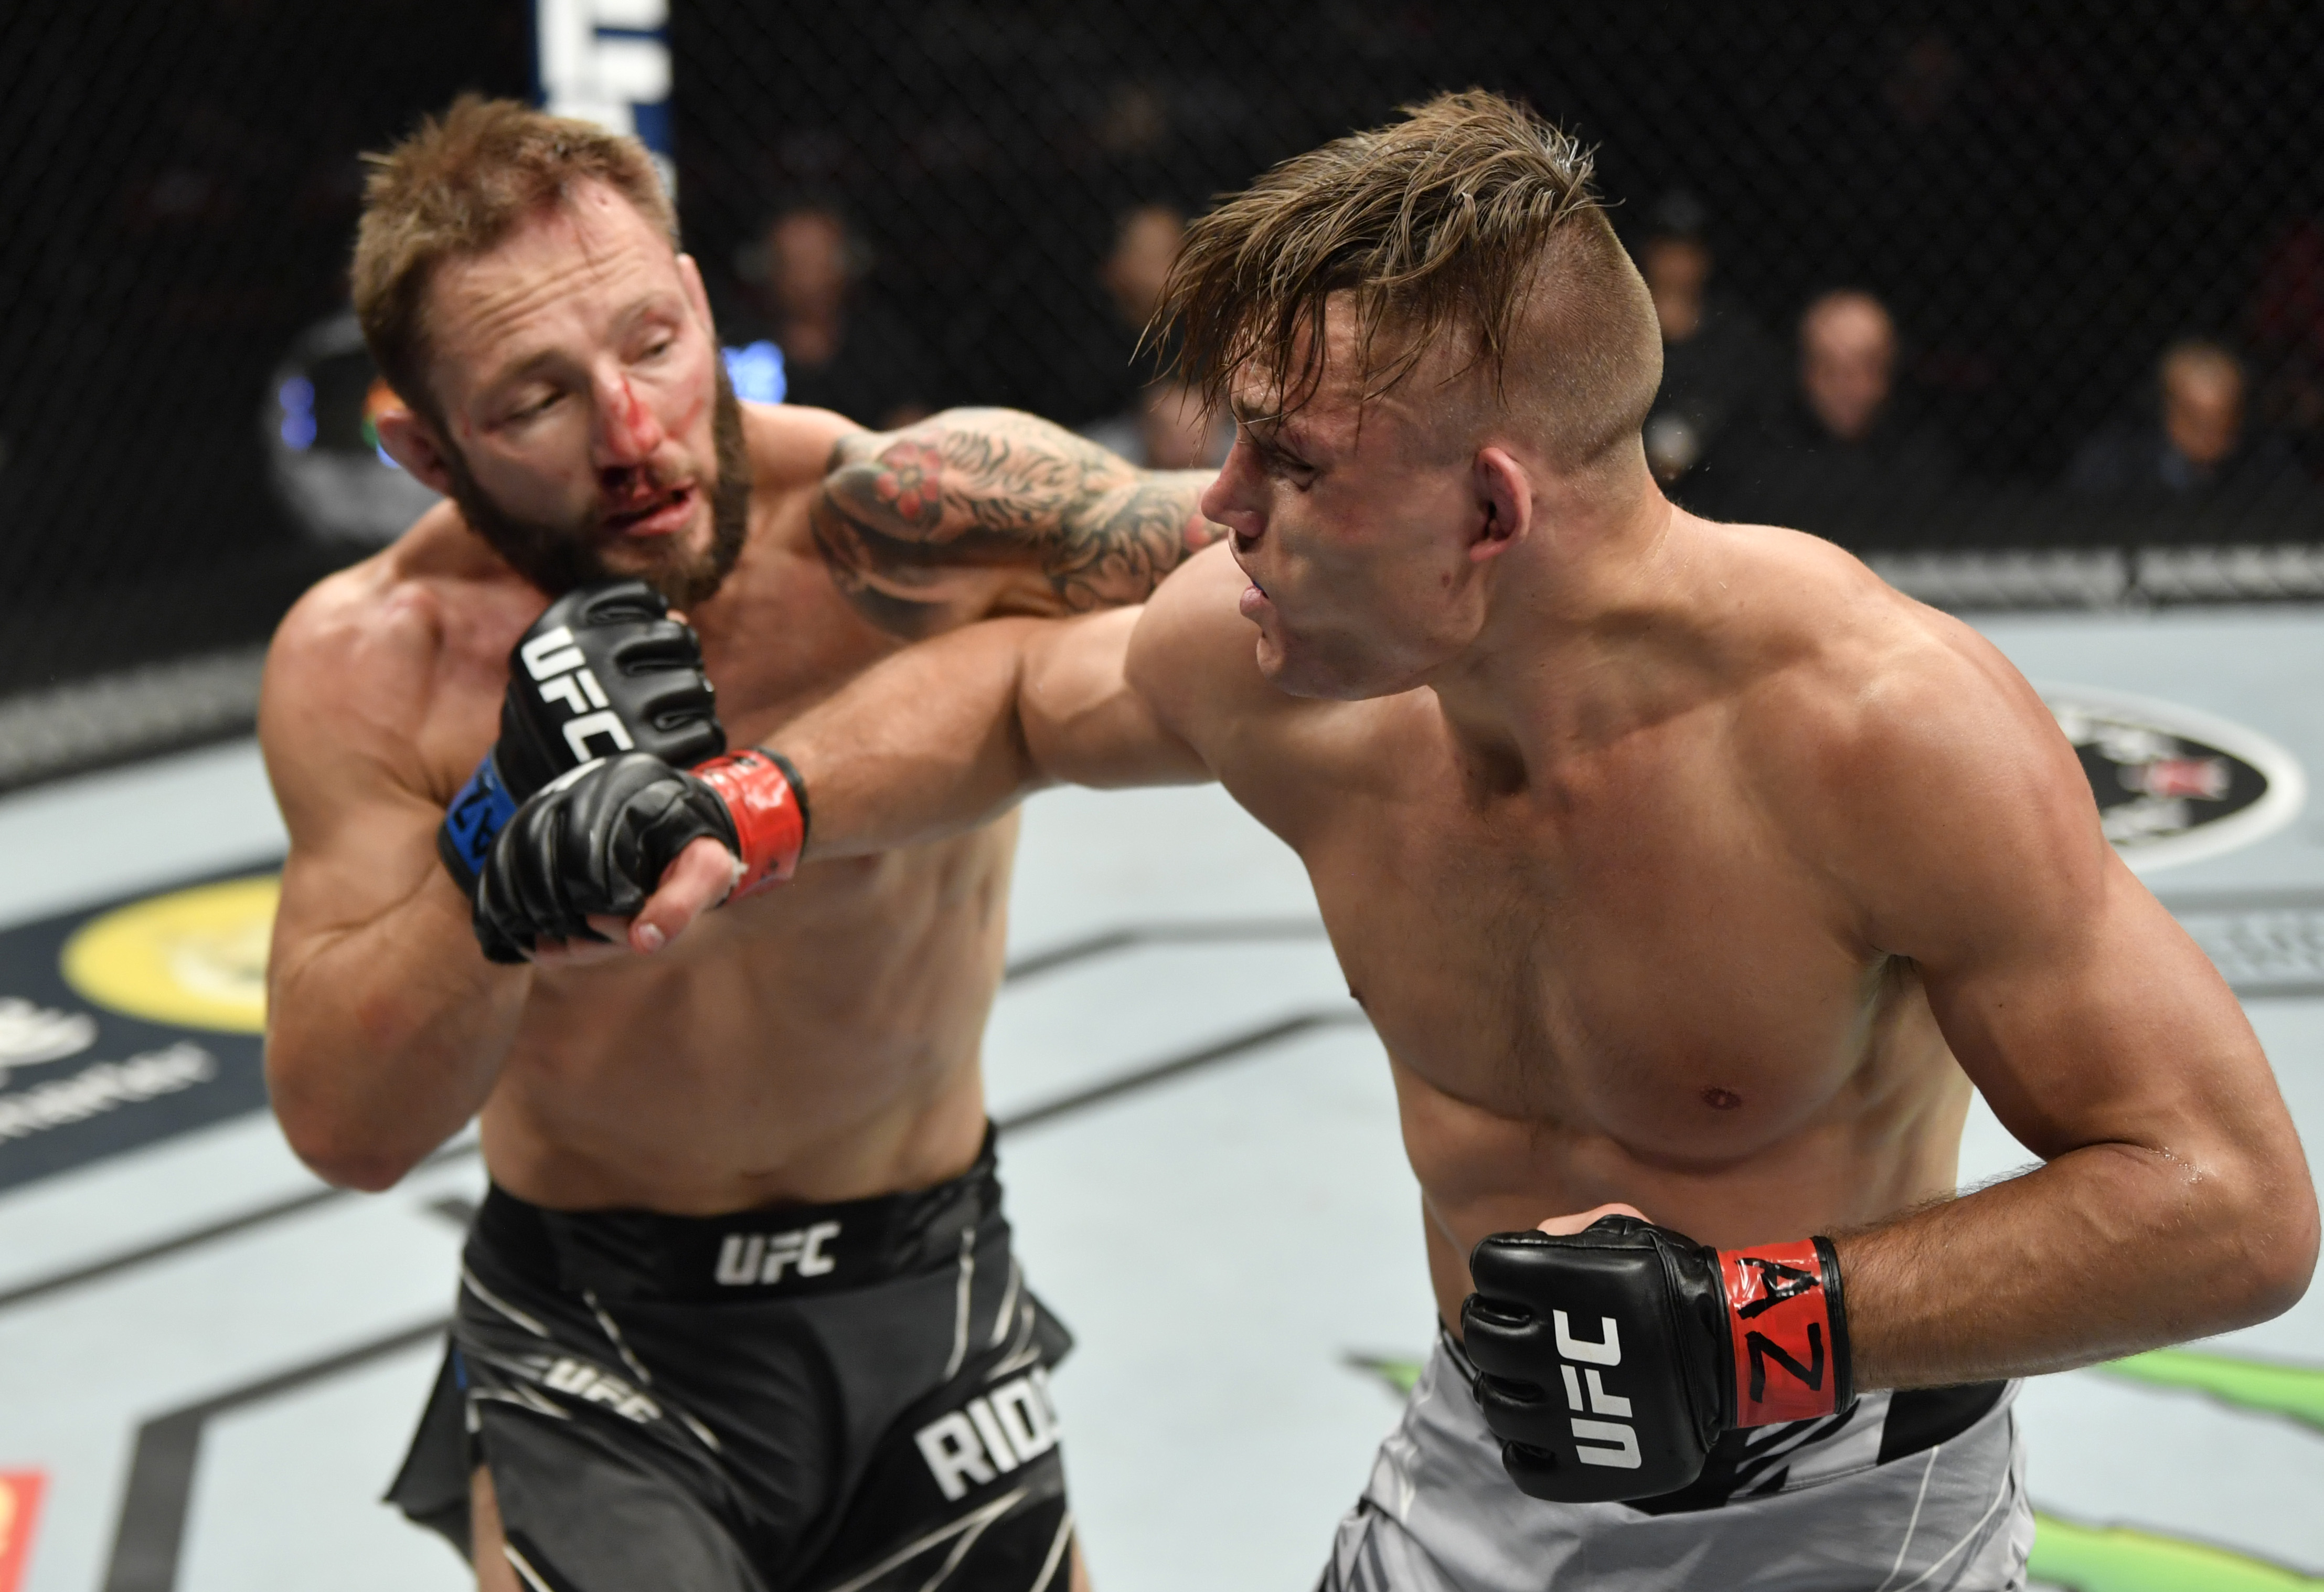 Brad Riddell of New Zealand punches Drew Dober in their lightweight fight during the UFC 263 event at Gila River Arena on June 12, 2021 in Glendale, Arizona. (Photo by Jeff Bottari/Zuffa LLC)